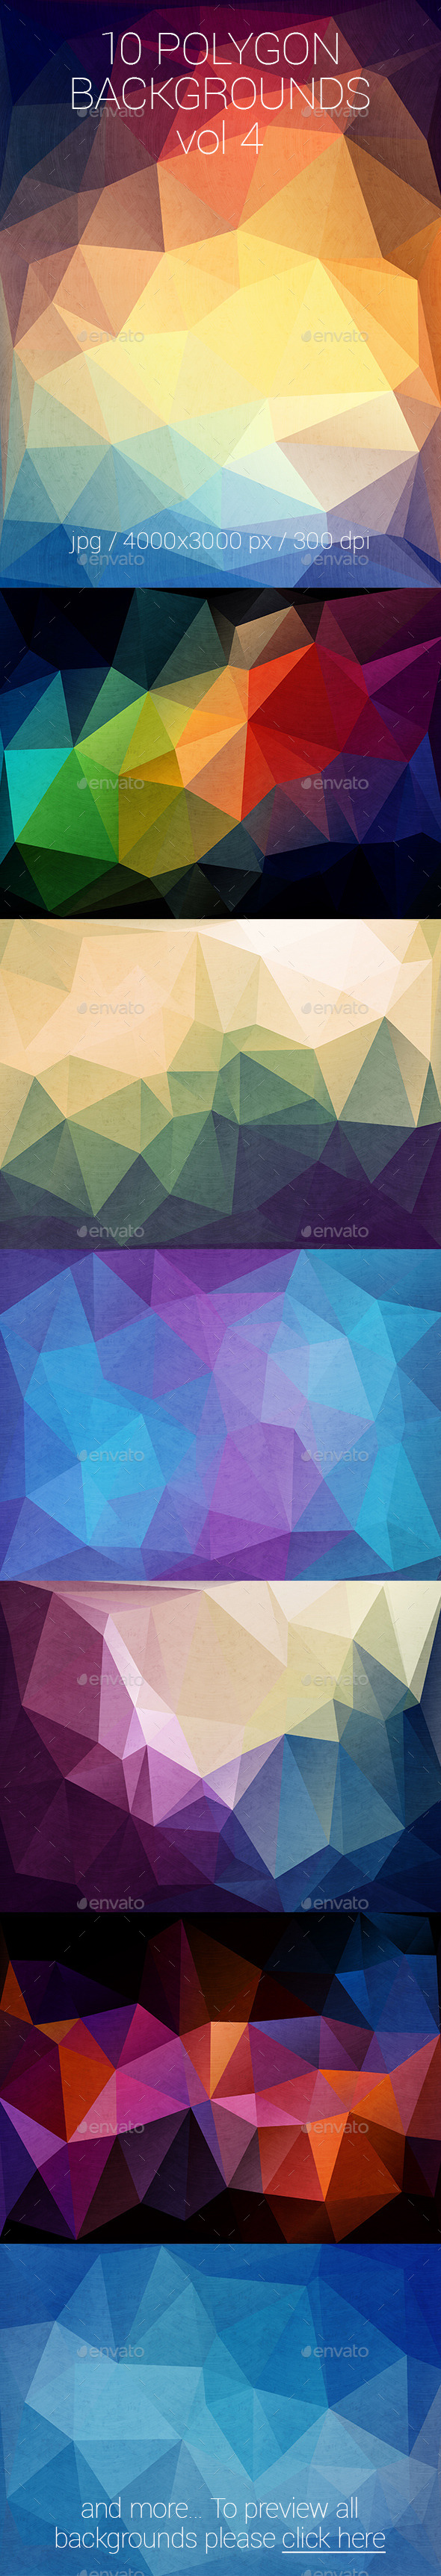 10 Polygon Backgrounds Vol. 4 - Abstract Backgrounds